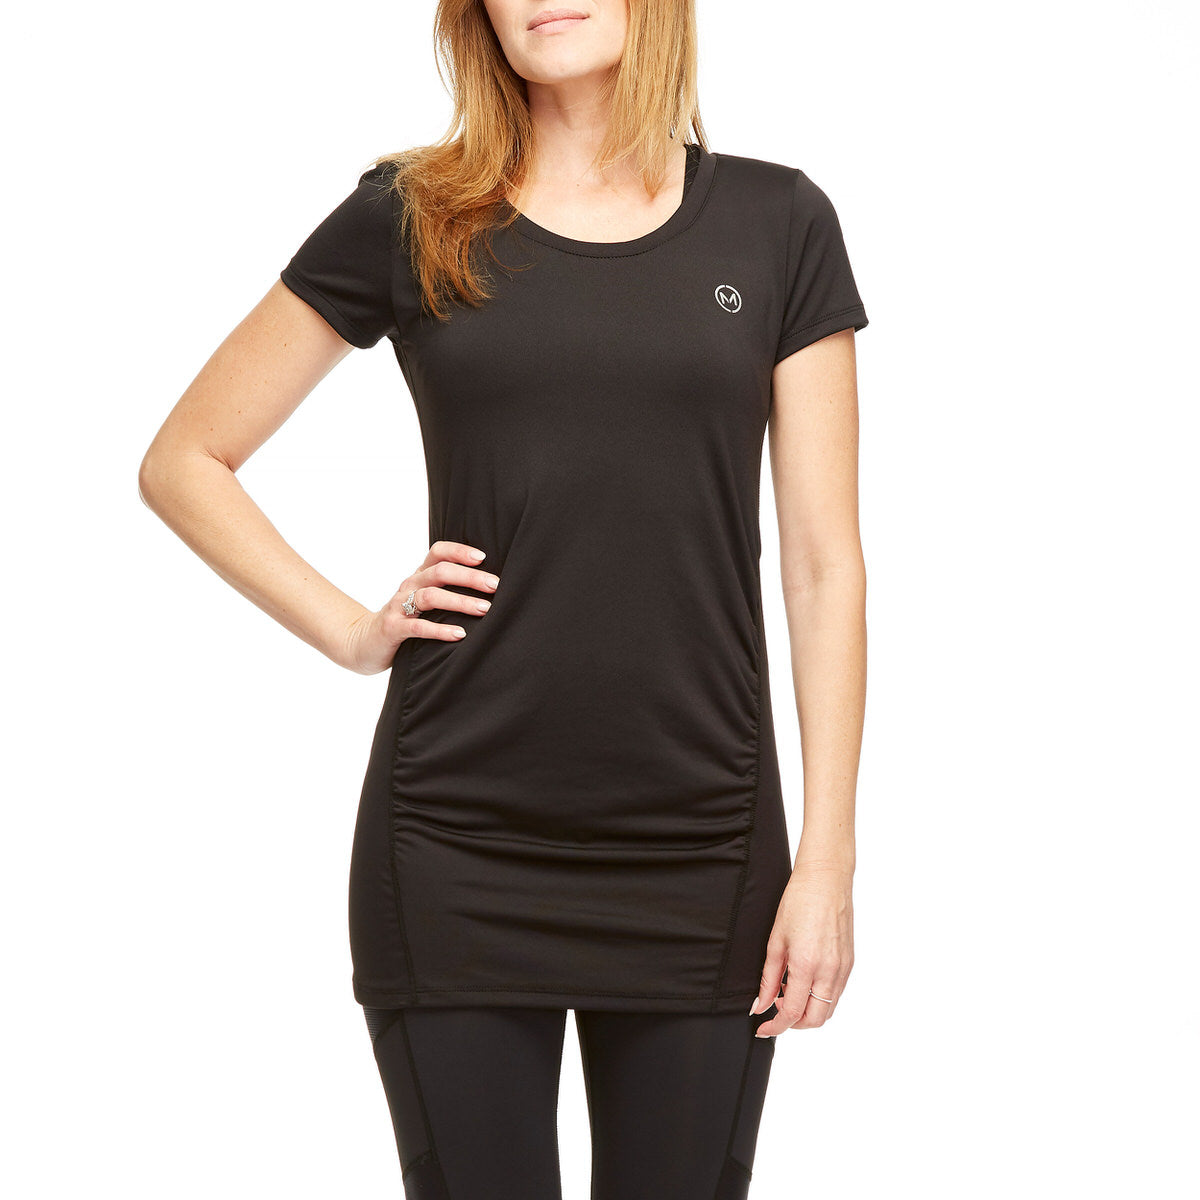 UNITY T-Shirt Lightweight